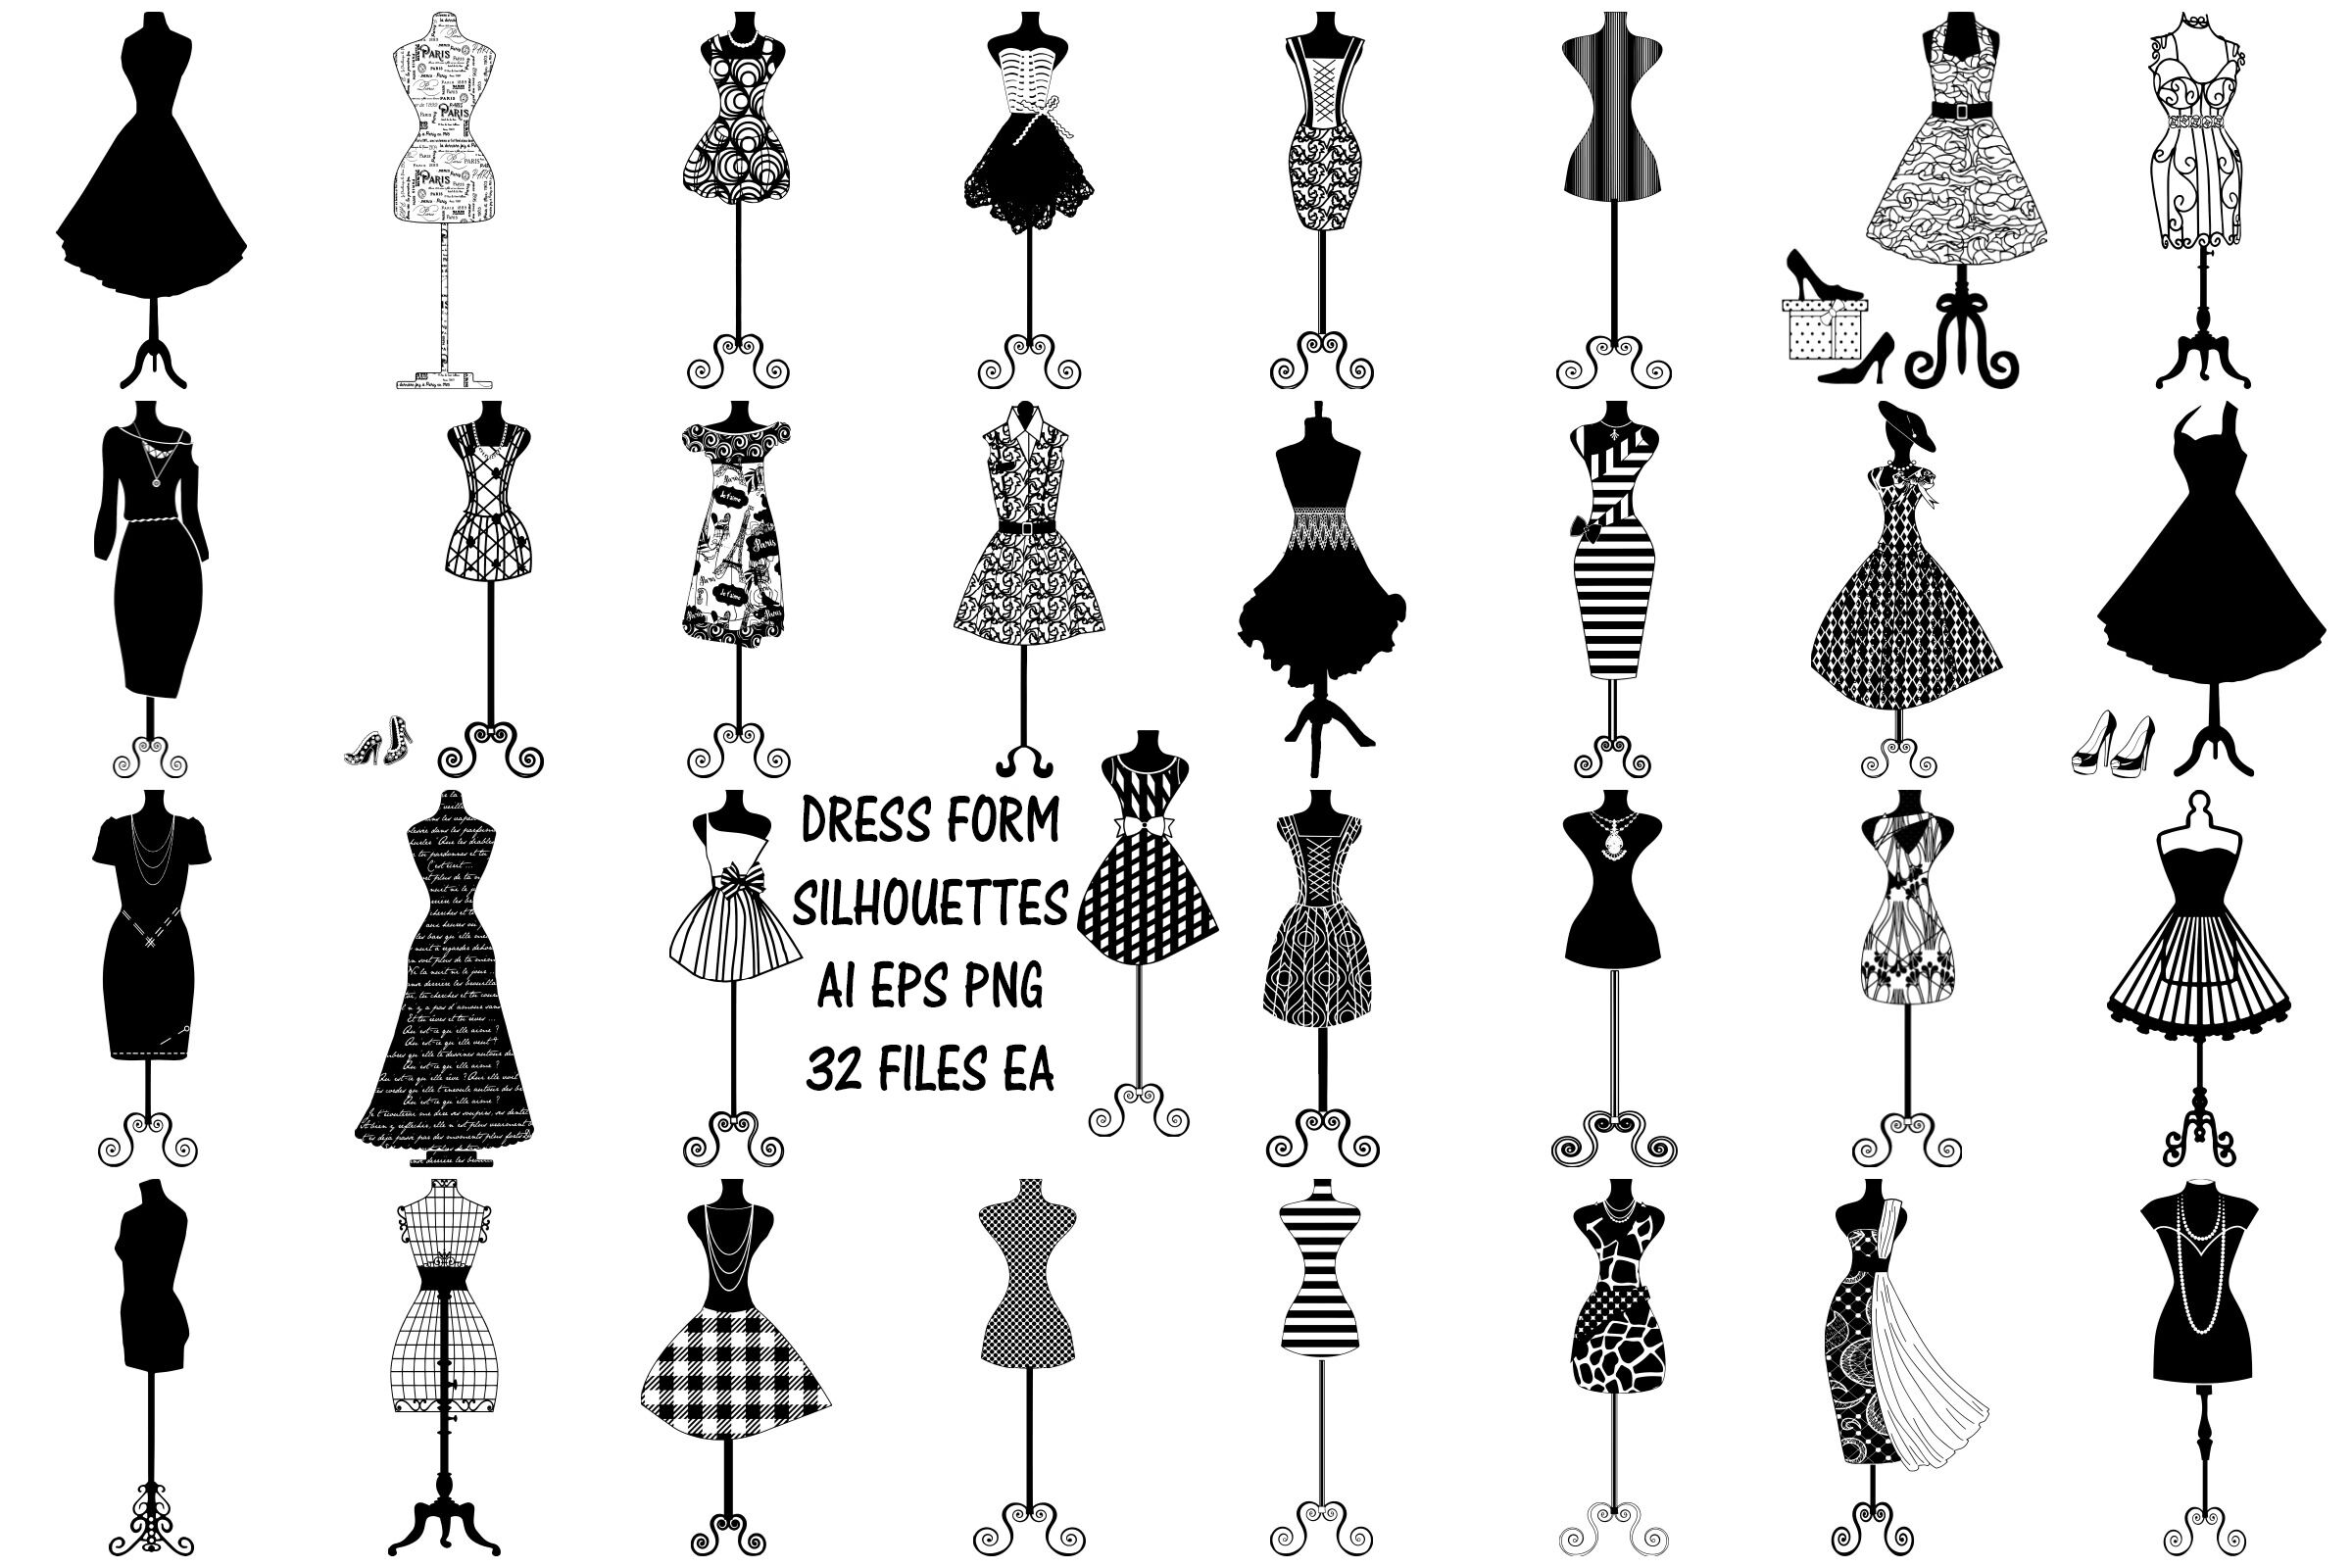 Dress Form Silhouettes Ai Eps Png By Me And Amelie Thehungryjpeg Com